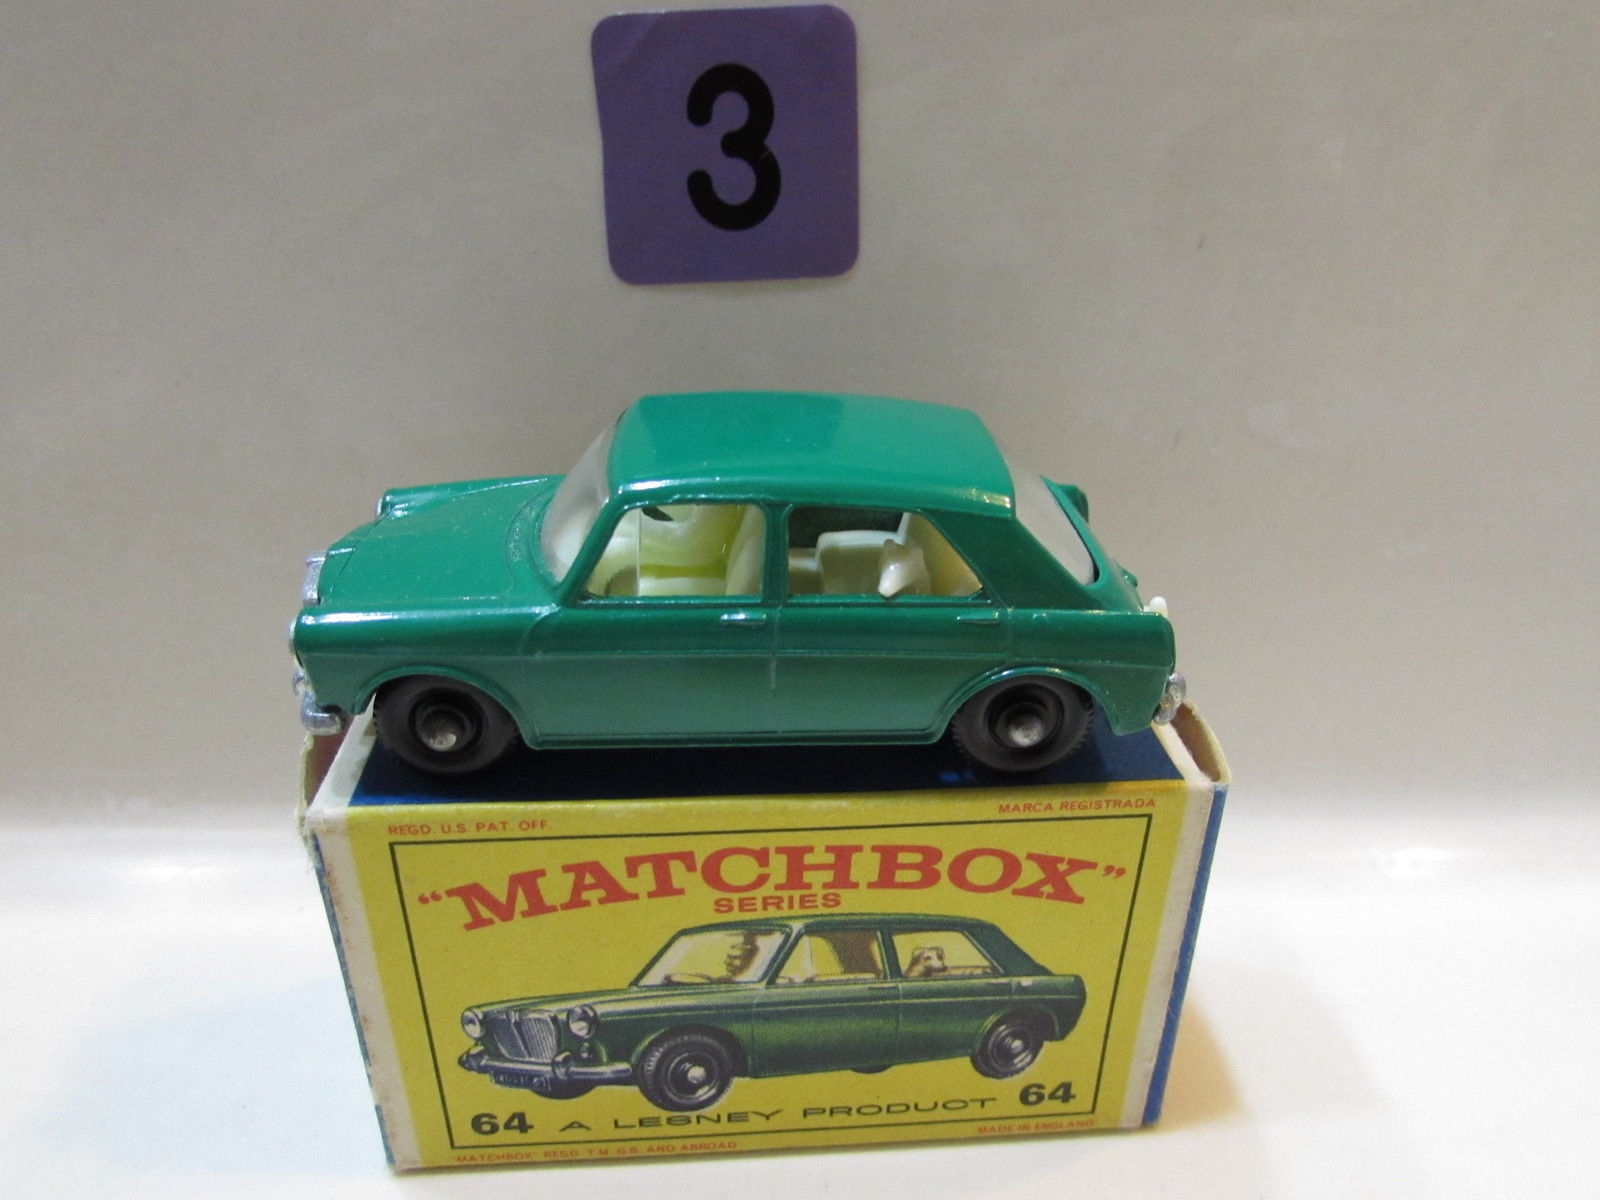 MATCHBOX SERIES #64 M.G 1100 LESNEY PRODUCT MADE IN ENGLAND